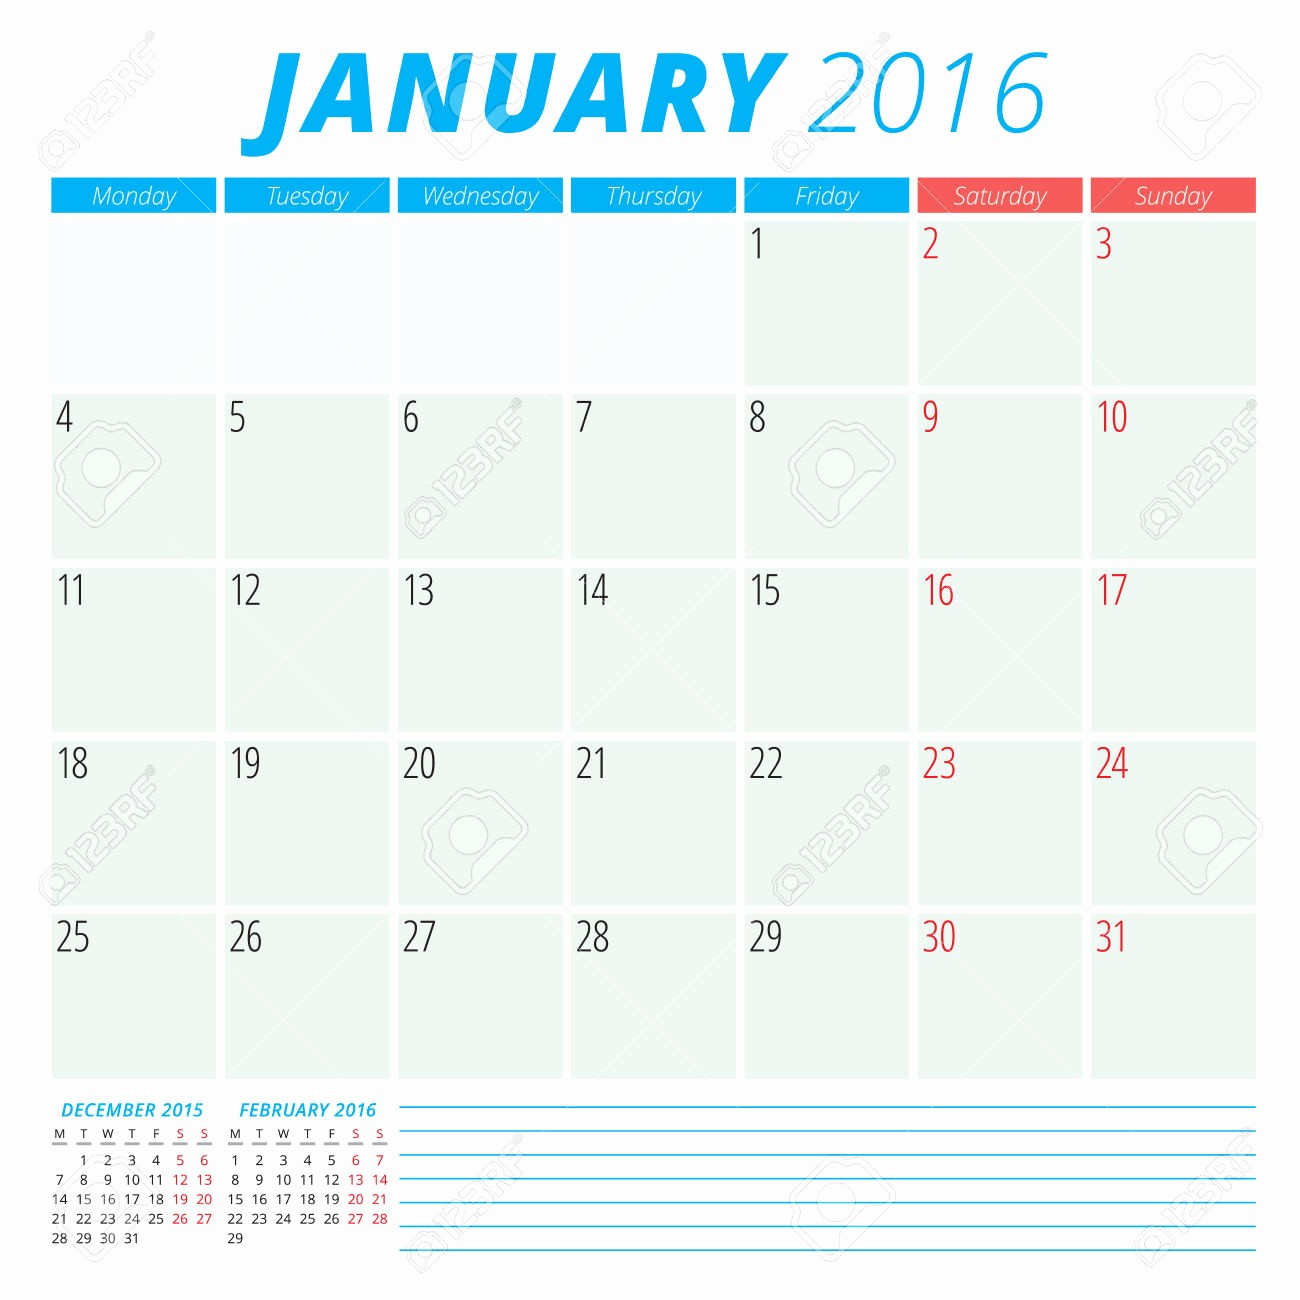 January 2016 Calendar Template Word Fresh January 2016 Calendar Printable Template – 2017 Printable